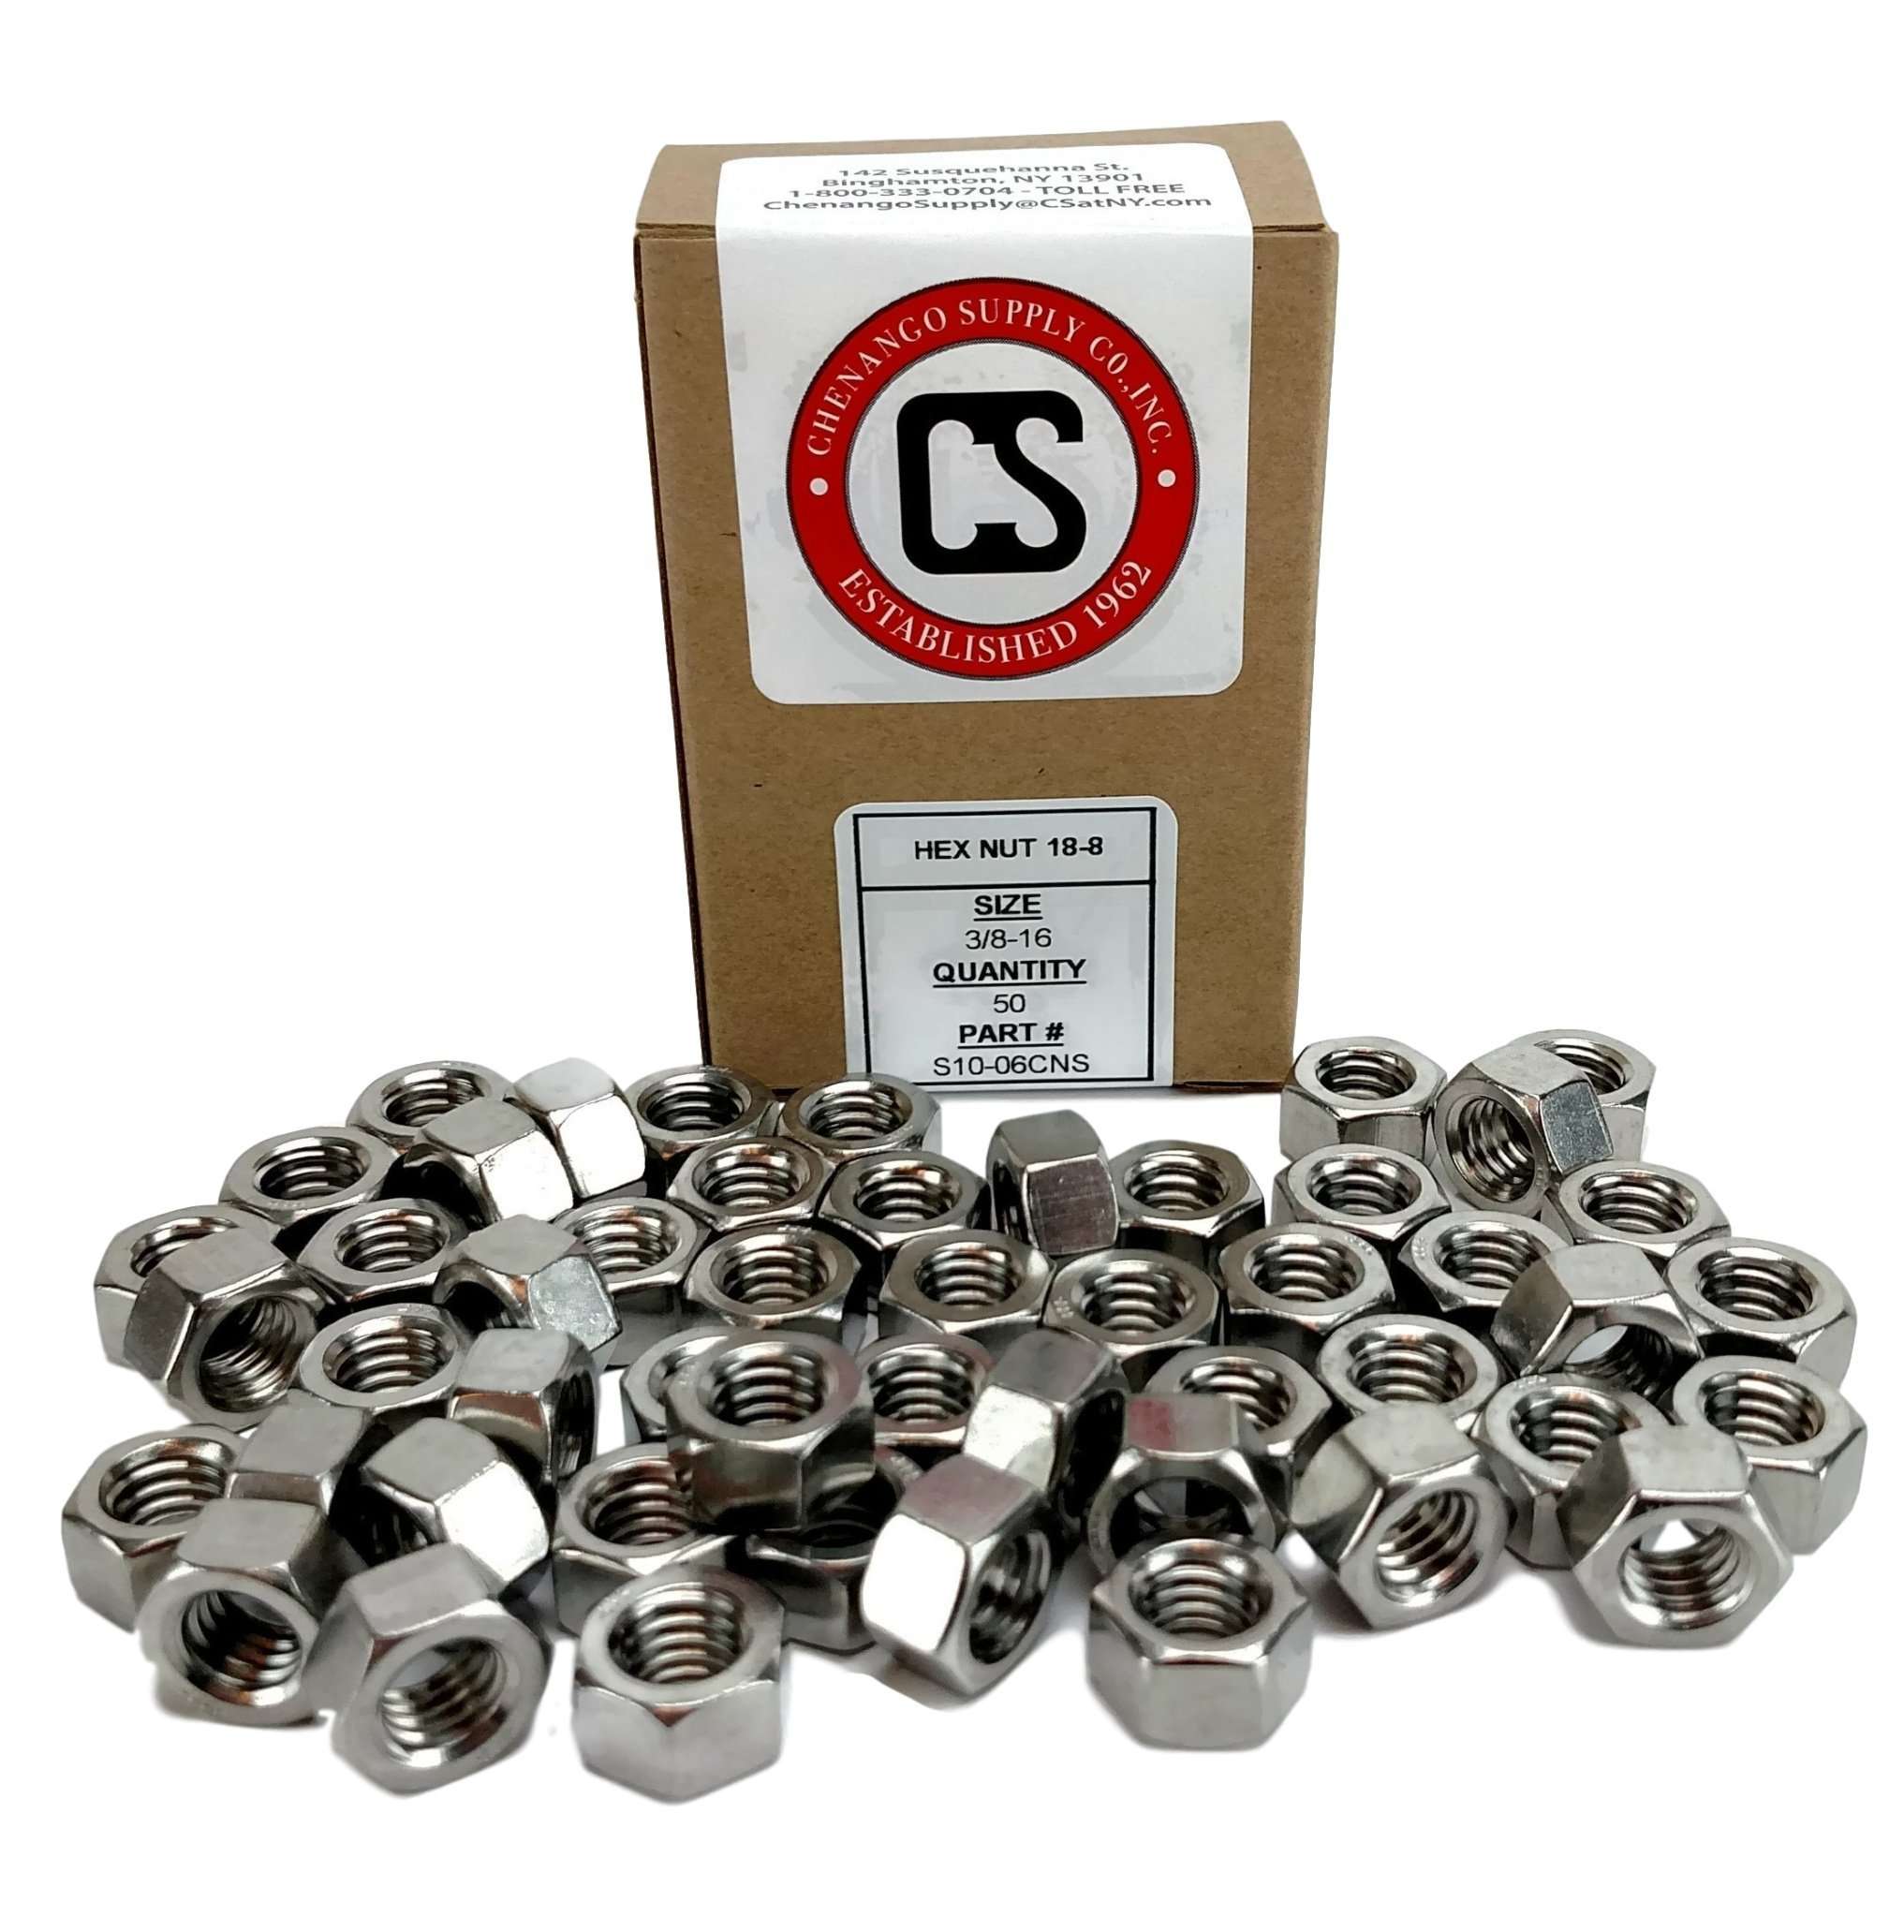 Stainless 3/8-16 USS Hex Nut,(More selections in Listing!) 304 Stainless Steel (3/8-16 HEX NUTS (50 PCS)) by Chenango Supply (Image #1)